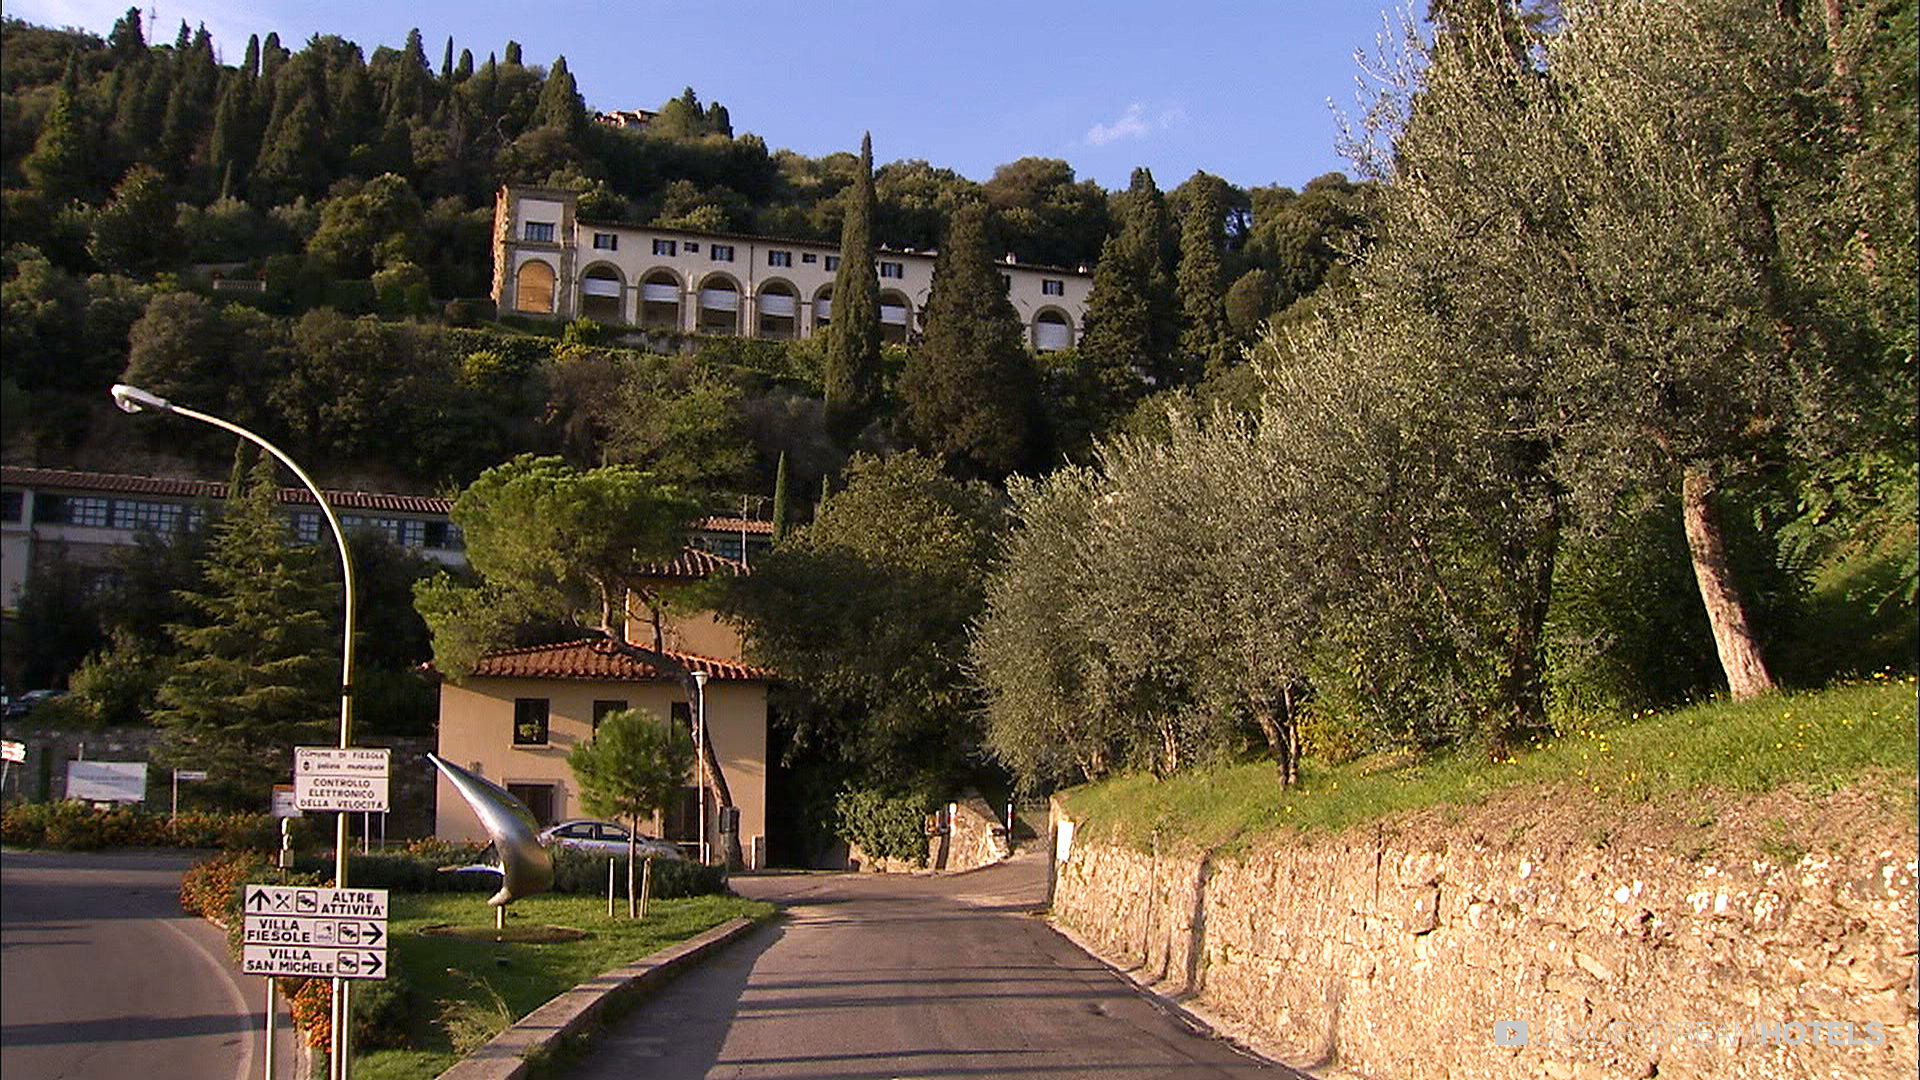 Luxury hotel, Villa San Michele, Florence, Italy - Luxury Dream Hotels